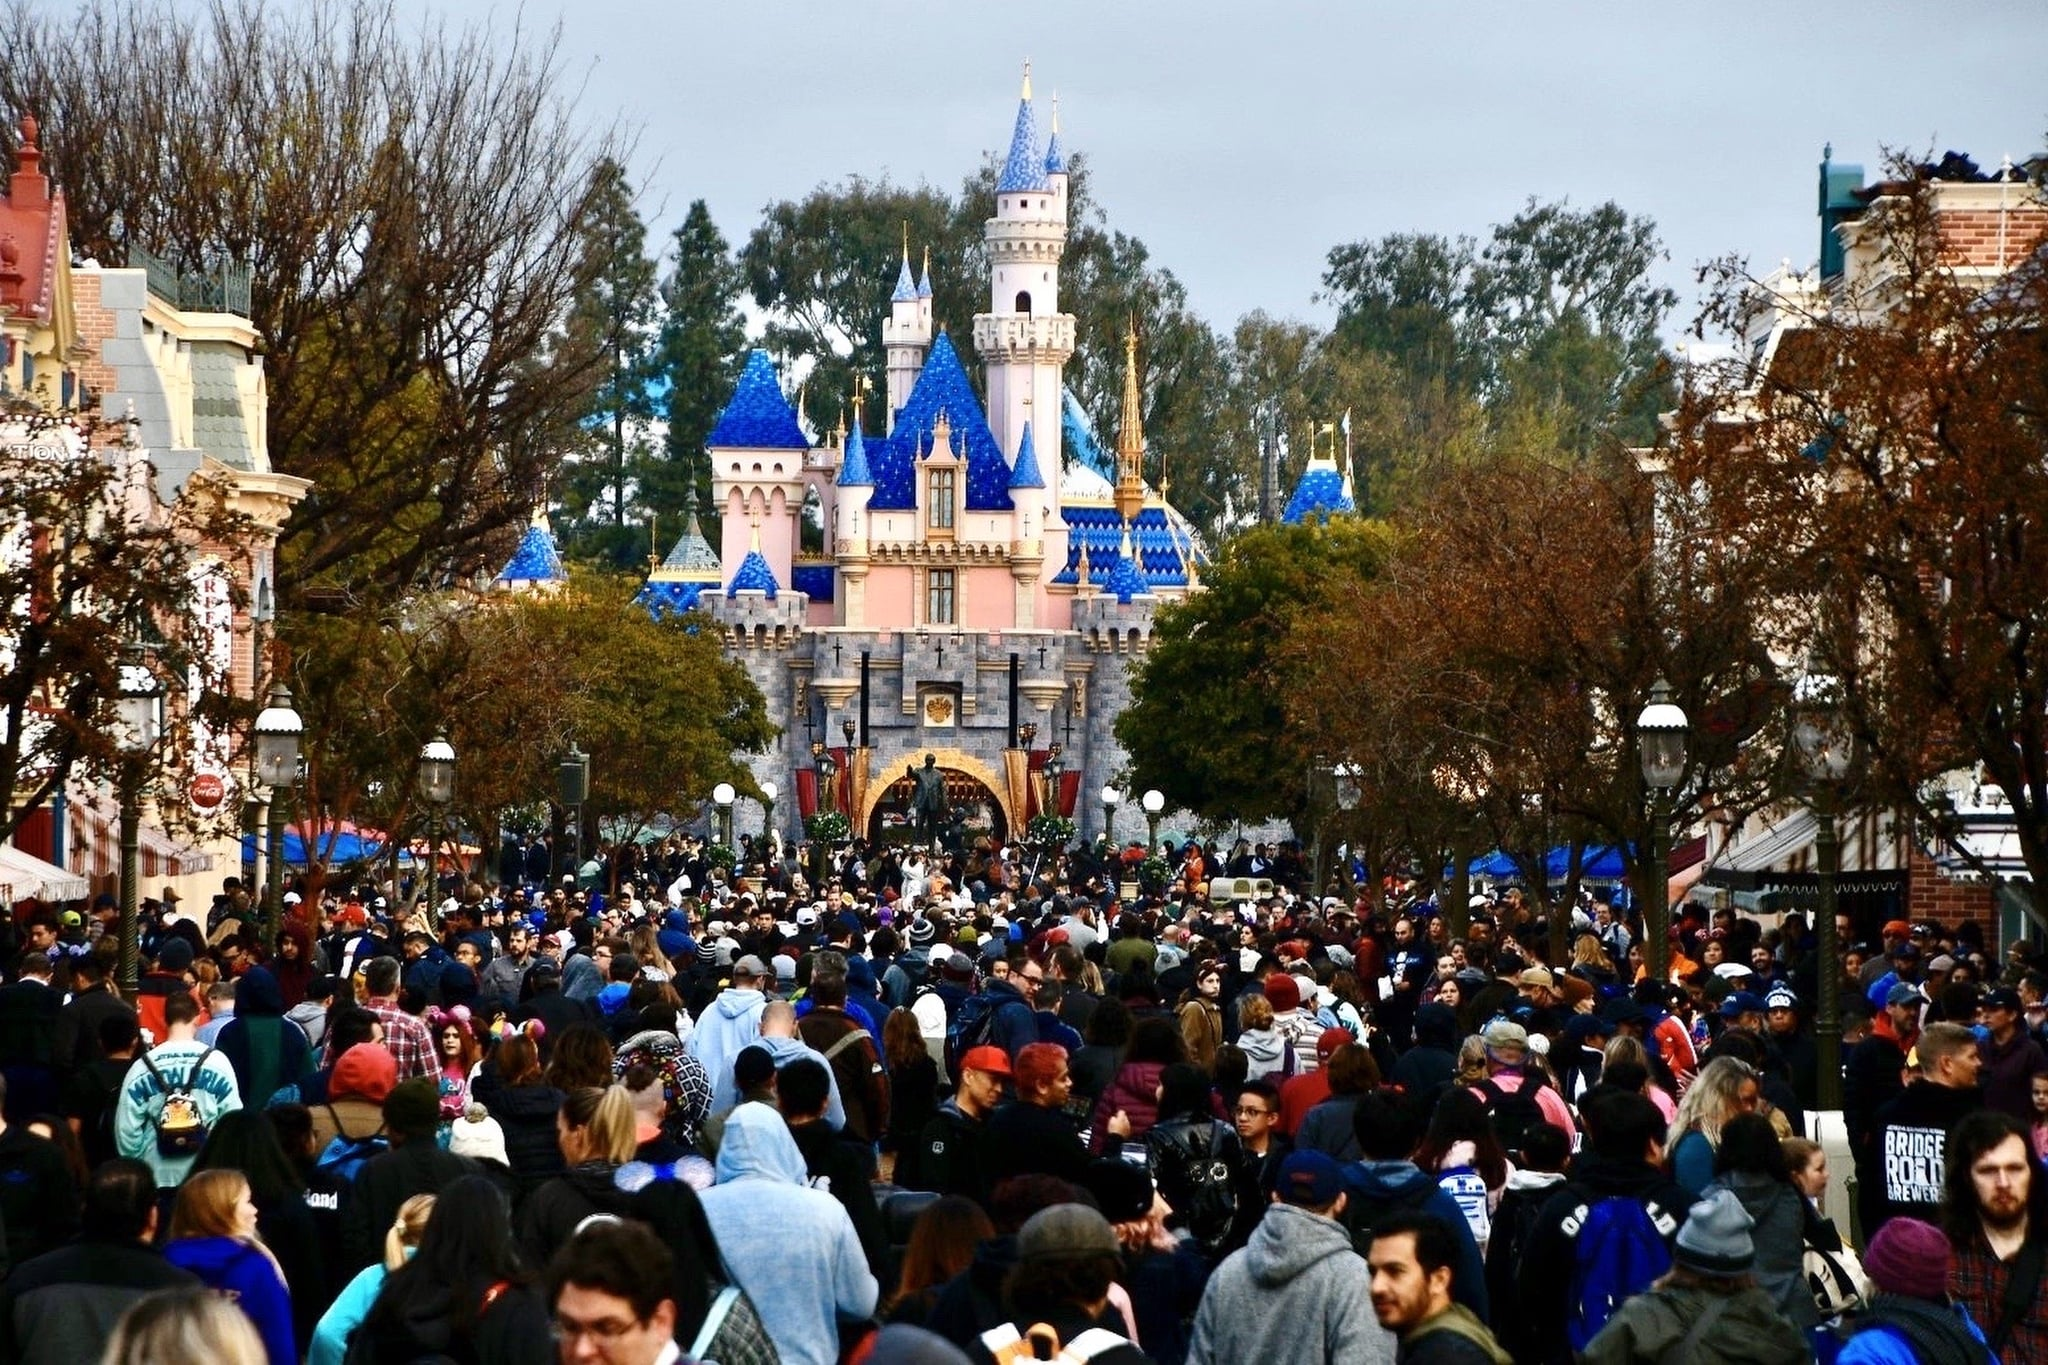 ANAHEIM, CA - JANUARY 17: Crowds fill Main Street U.S.A. before the opening of Rise of the Resistance at In Disneyland in Anaheim, CA, on Friday, Jan. 17, 2020.